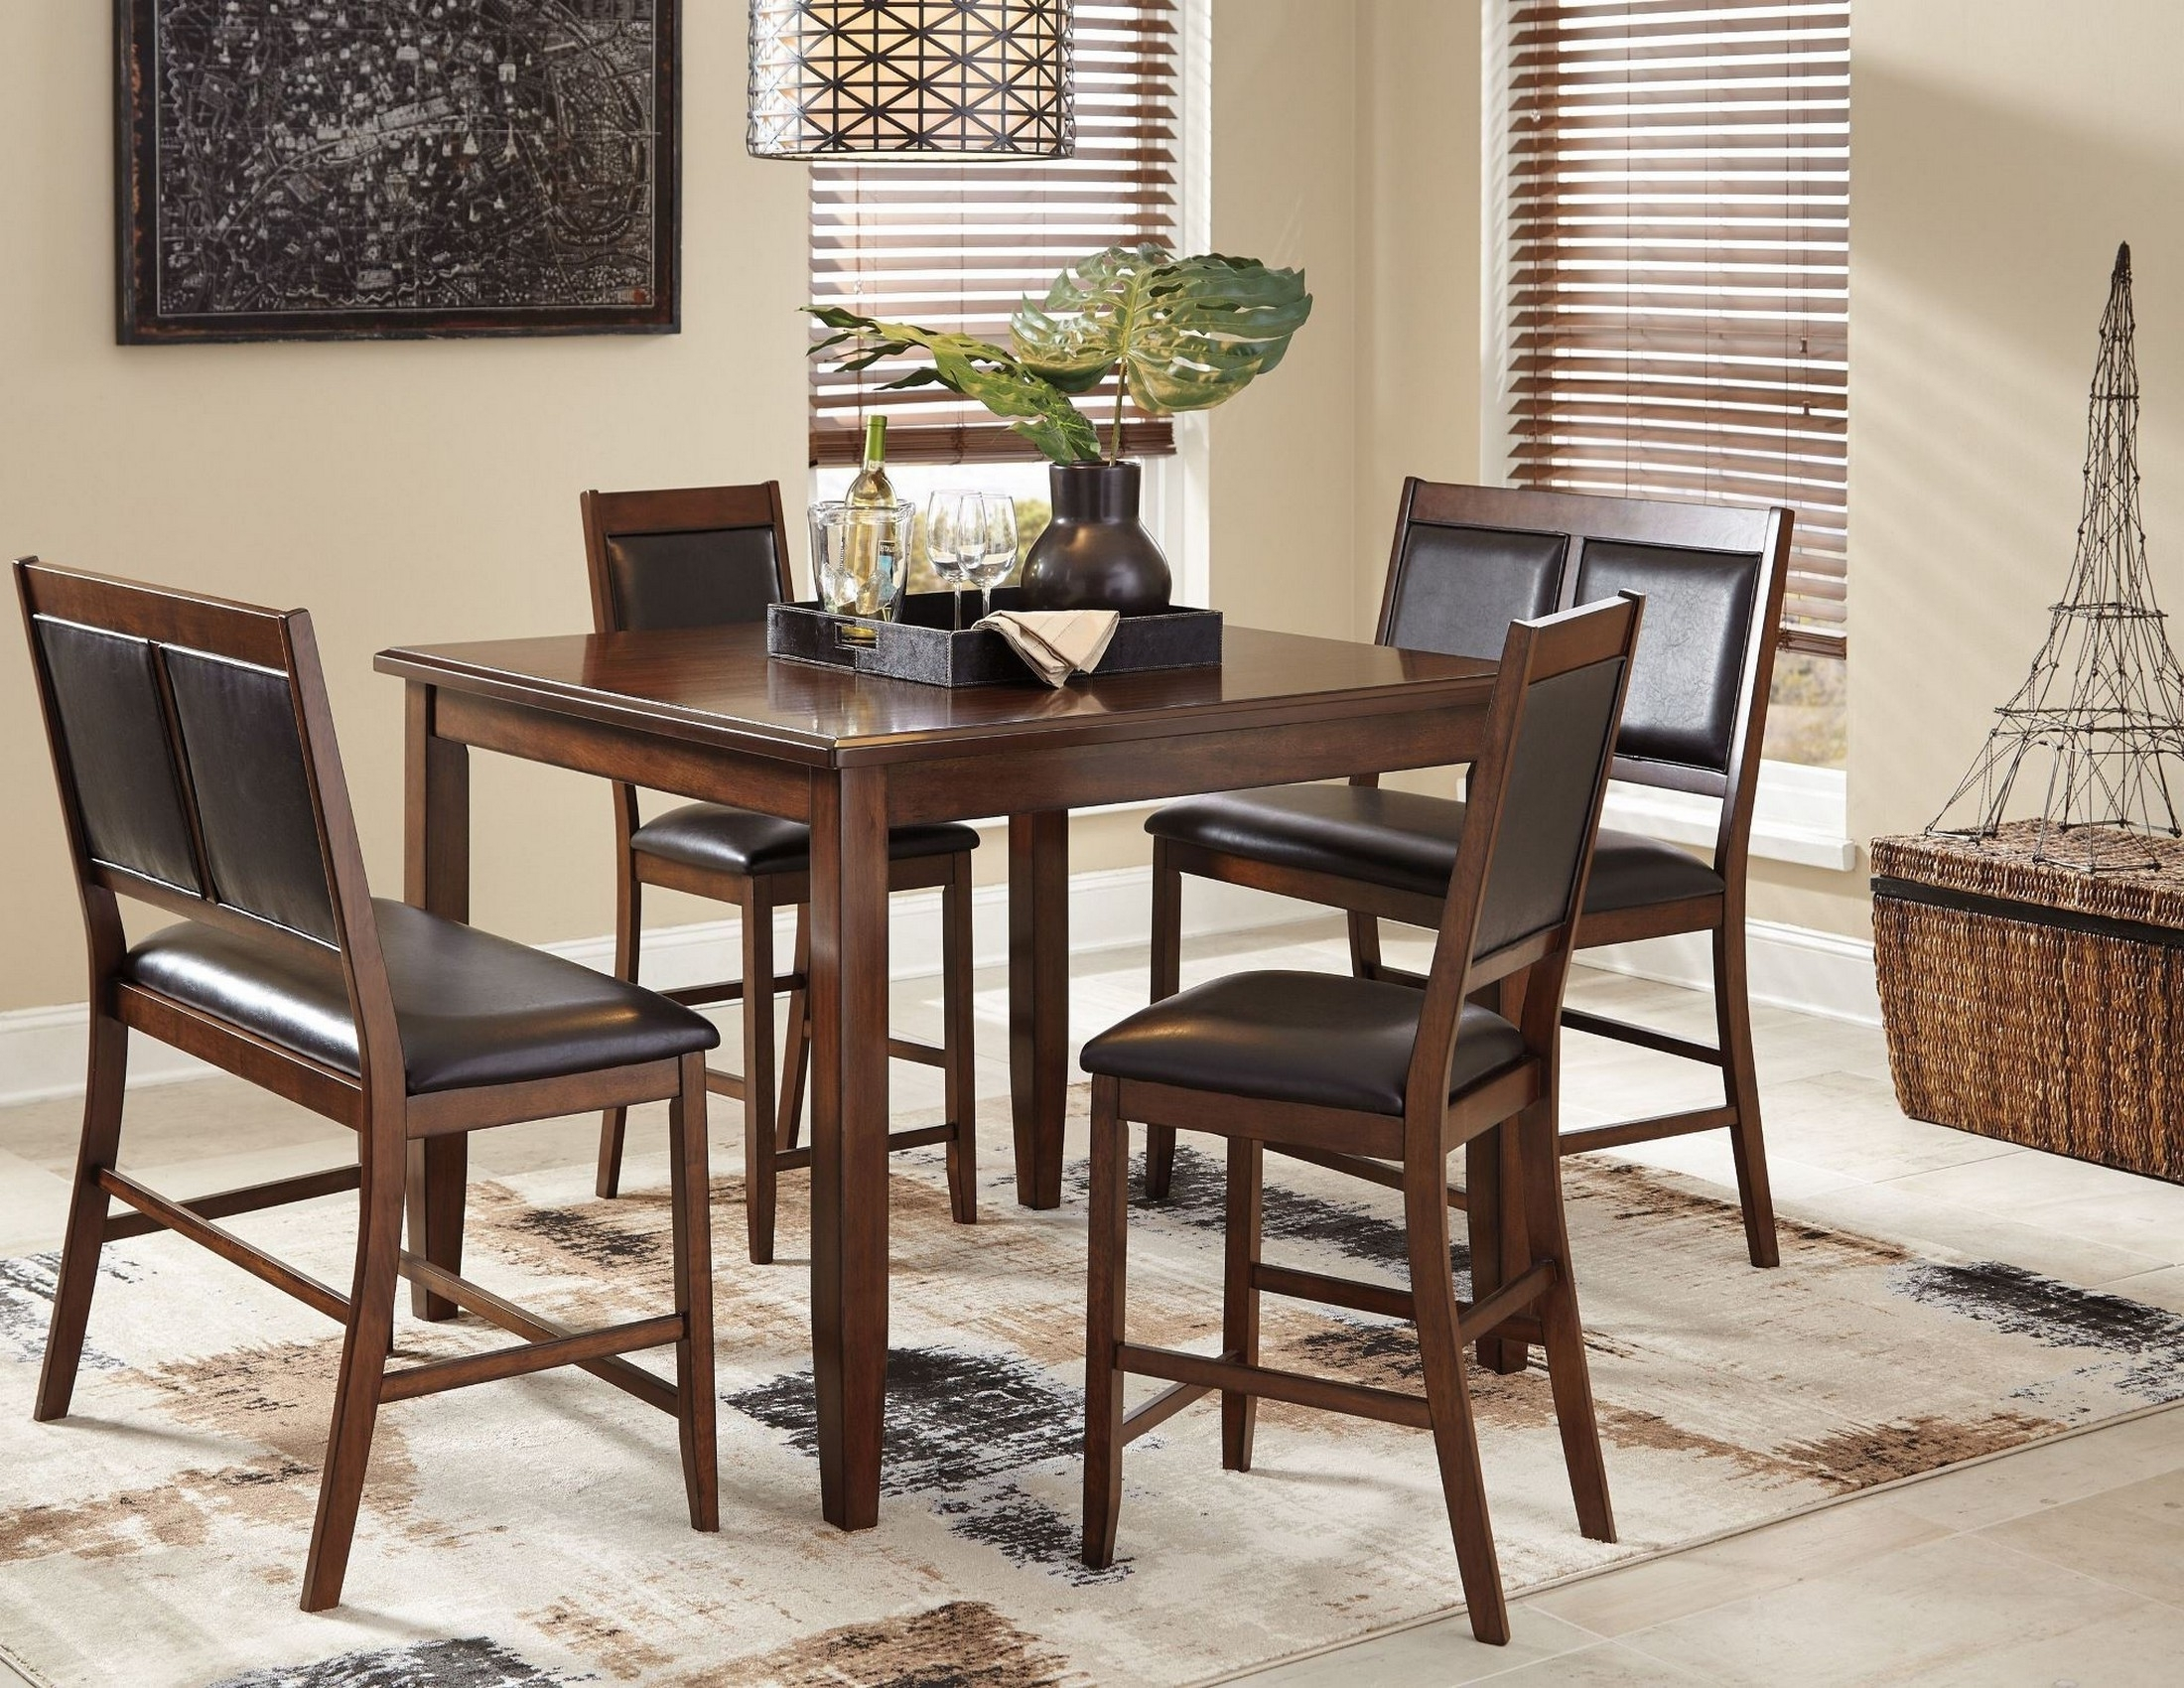 Meredy Brown 5 Piece Counter Height Dining Room Set From Ashley Within Most Recently Released Hyland 5 Piece Counter Sets With Bench (View 14 of 25)